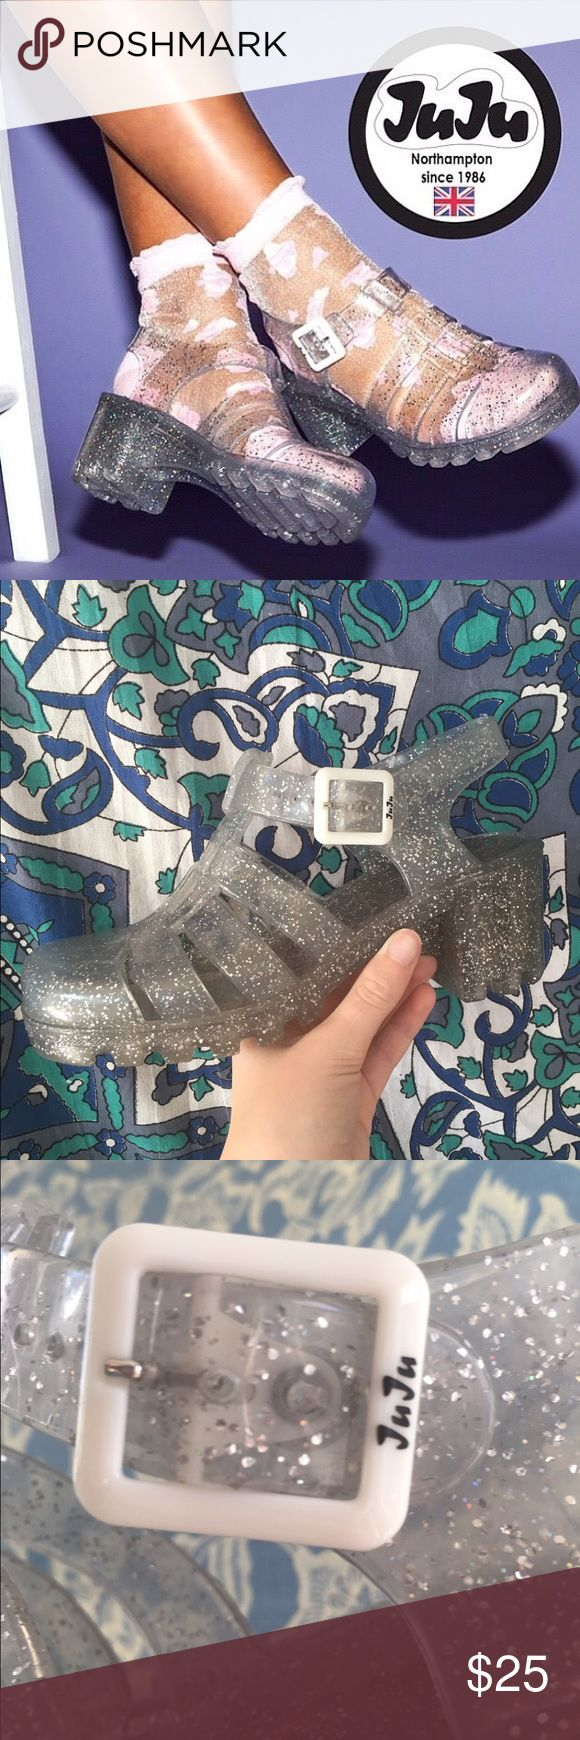 JUJU JELLY SANDALS JuJu brand clear sparkle jelly sandals⭐️ bought from Urban Outfitters not unif and I believe are now sold out online. Worn only once out so are in great condition💞 UK size 4 but I'm a size 7 in US sizes and they fit me perfectly. #90s #retro #urbanoutfitters #unif #jellysandals #americanapparel UNIF Shoes Sandals